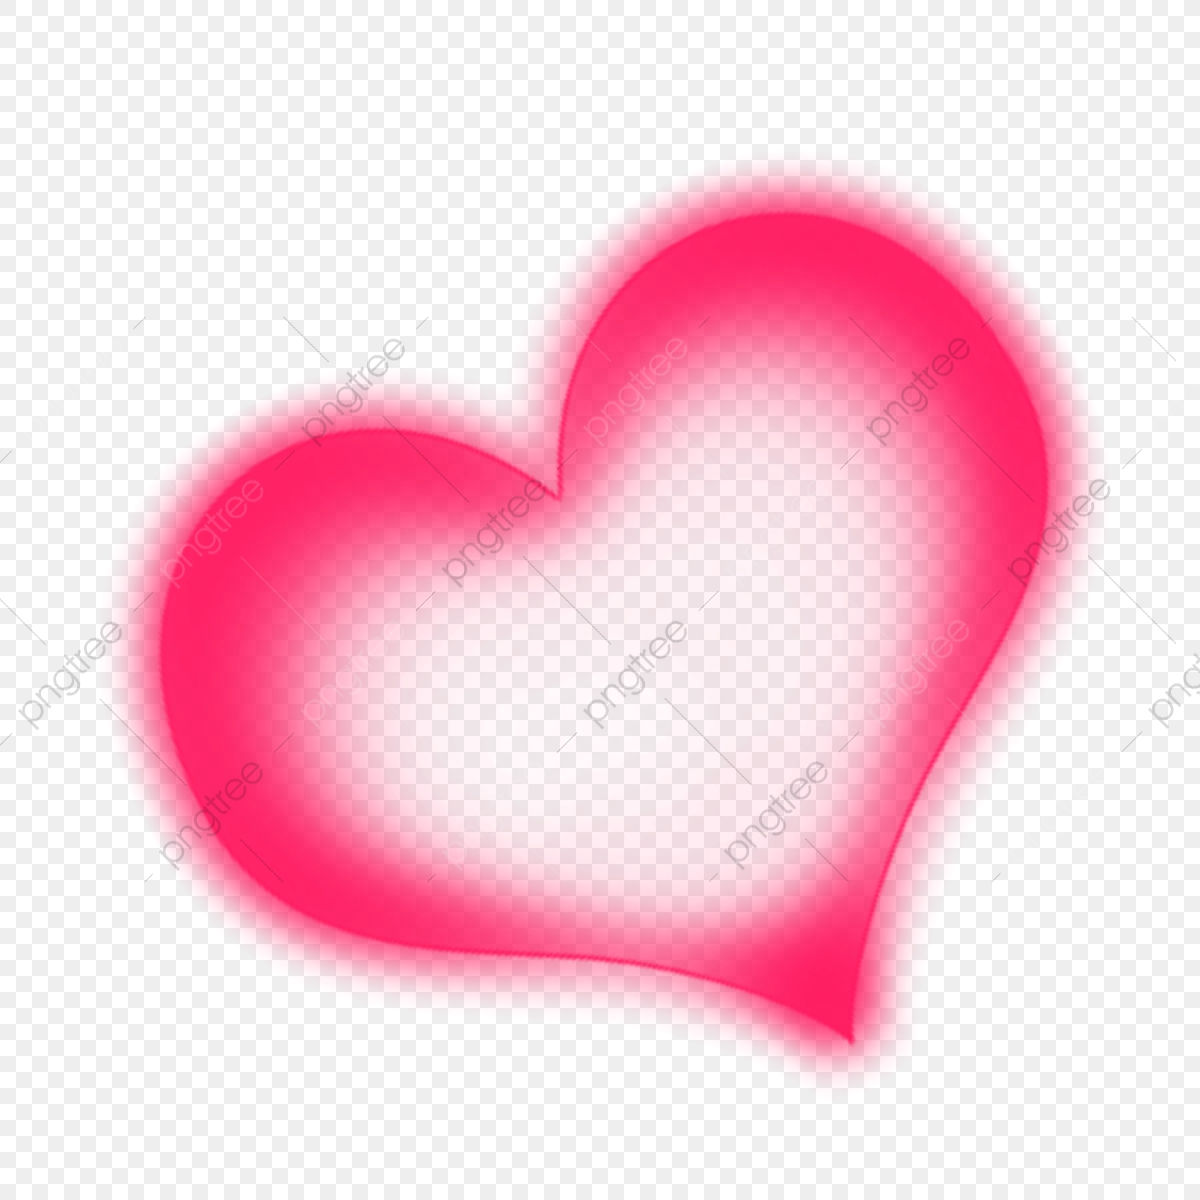 Heart Transparent Background Icon, Heart Png Transparent.